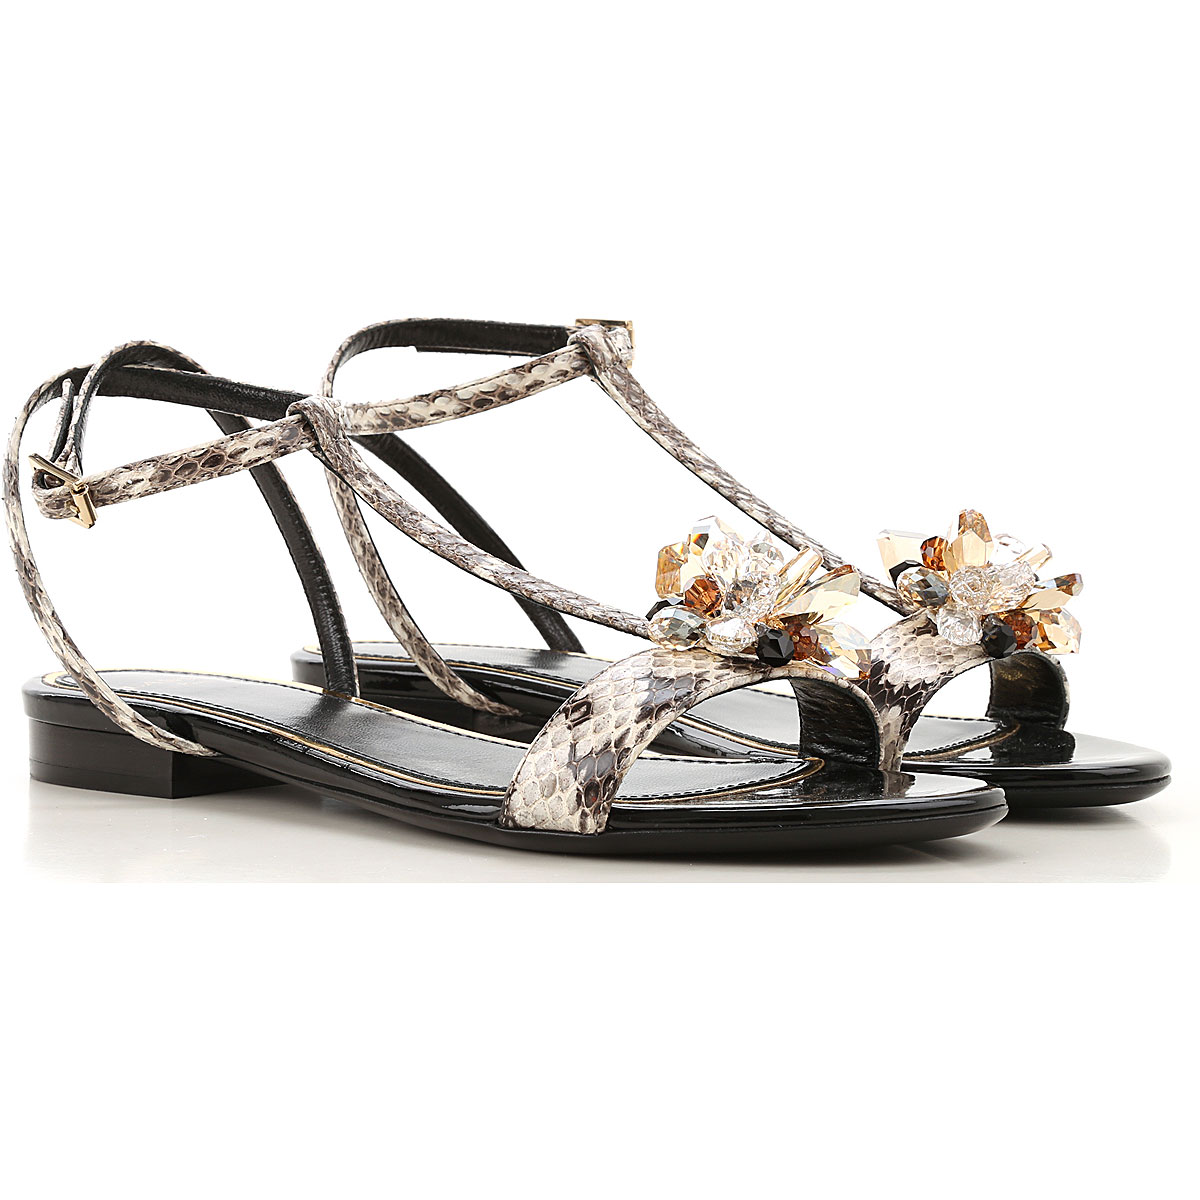 Lanvin Sandals for Women On Sale in Outlet, Ivory, Leather, 2019, 6 8 9